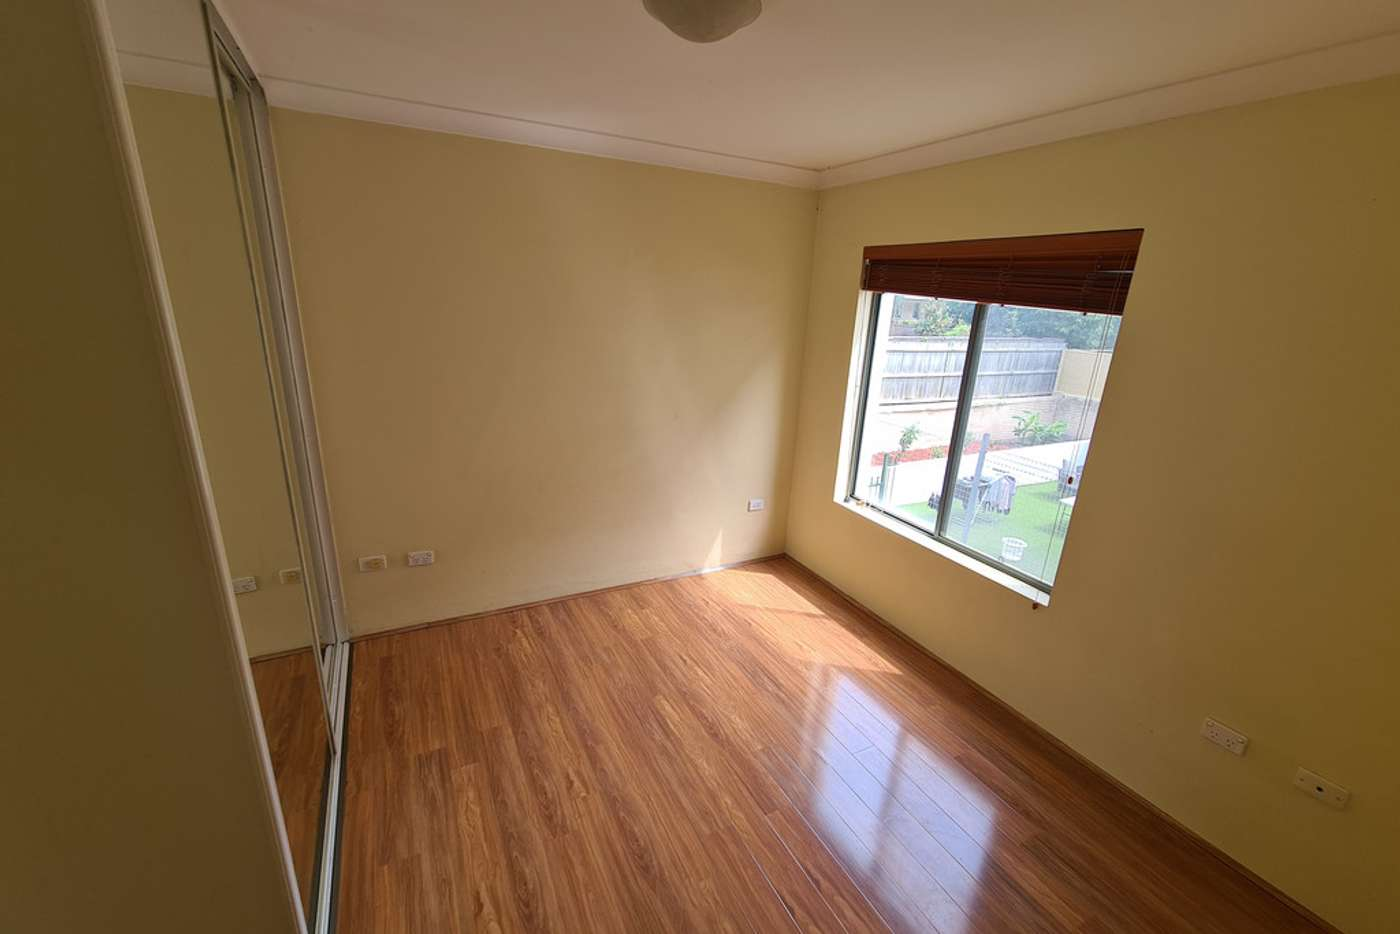 Seventh view of Homely apartment listing, 28/28a-32 BELMORE STREET, Burwood NSW 2134